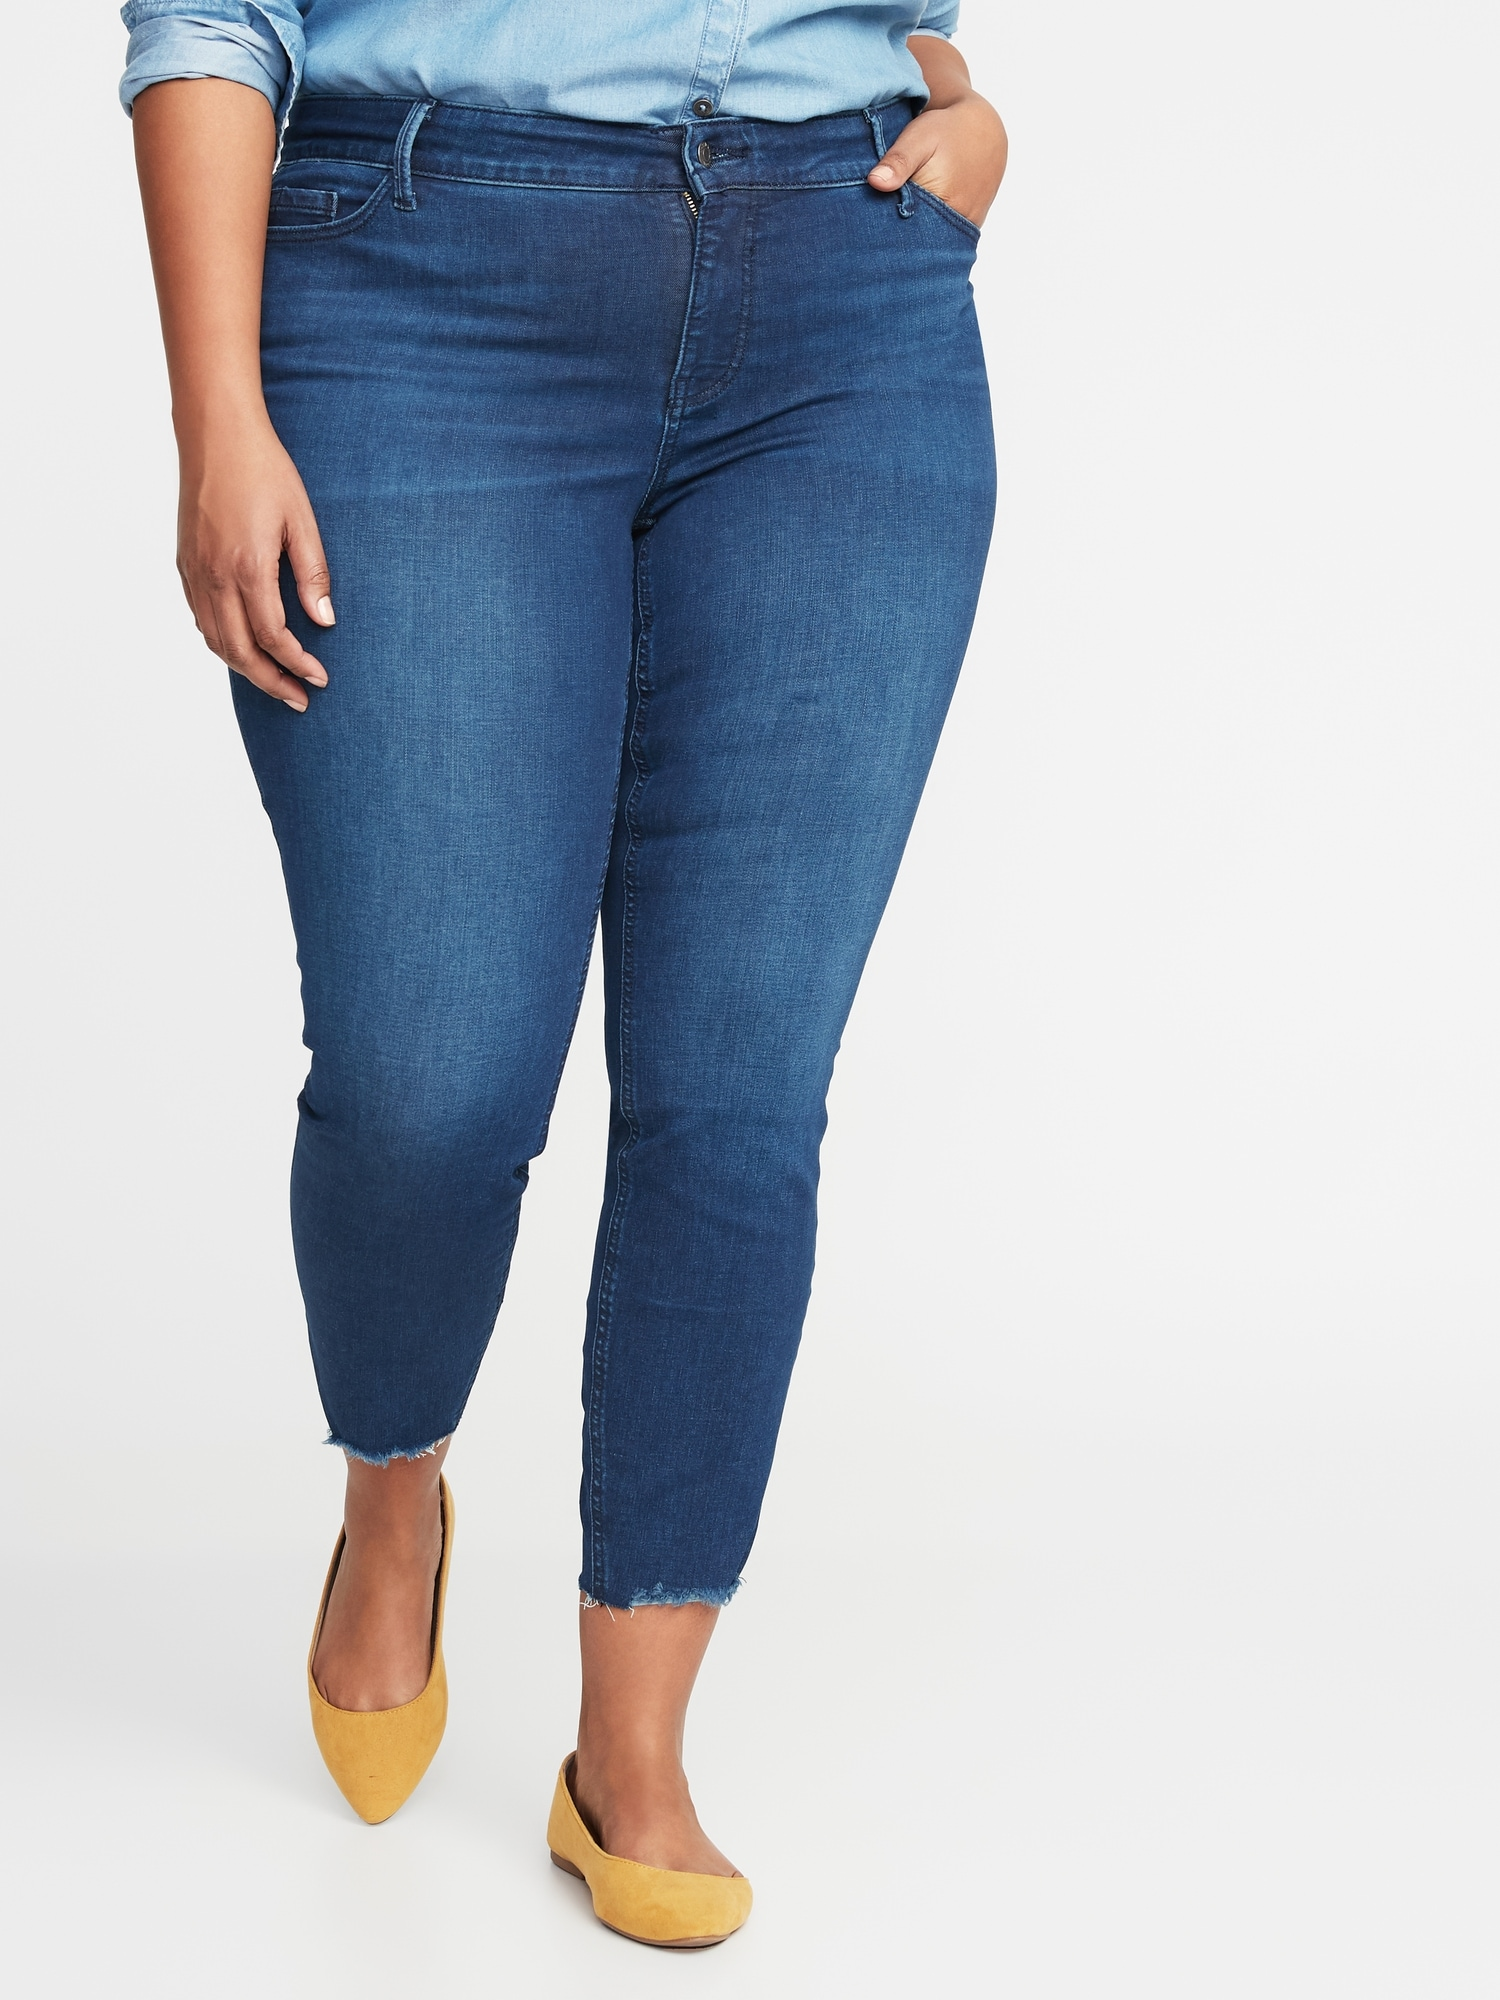 06b251a5cd21ac High-Rise Secret-Slim Pockets Rockstar Super Skinny Plus-Size Jeans ...